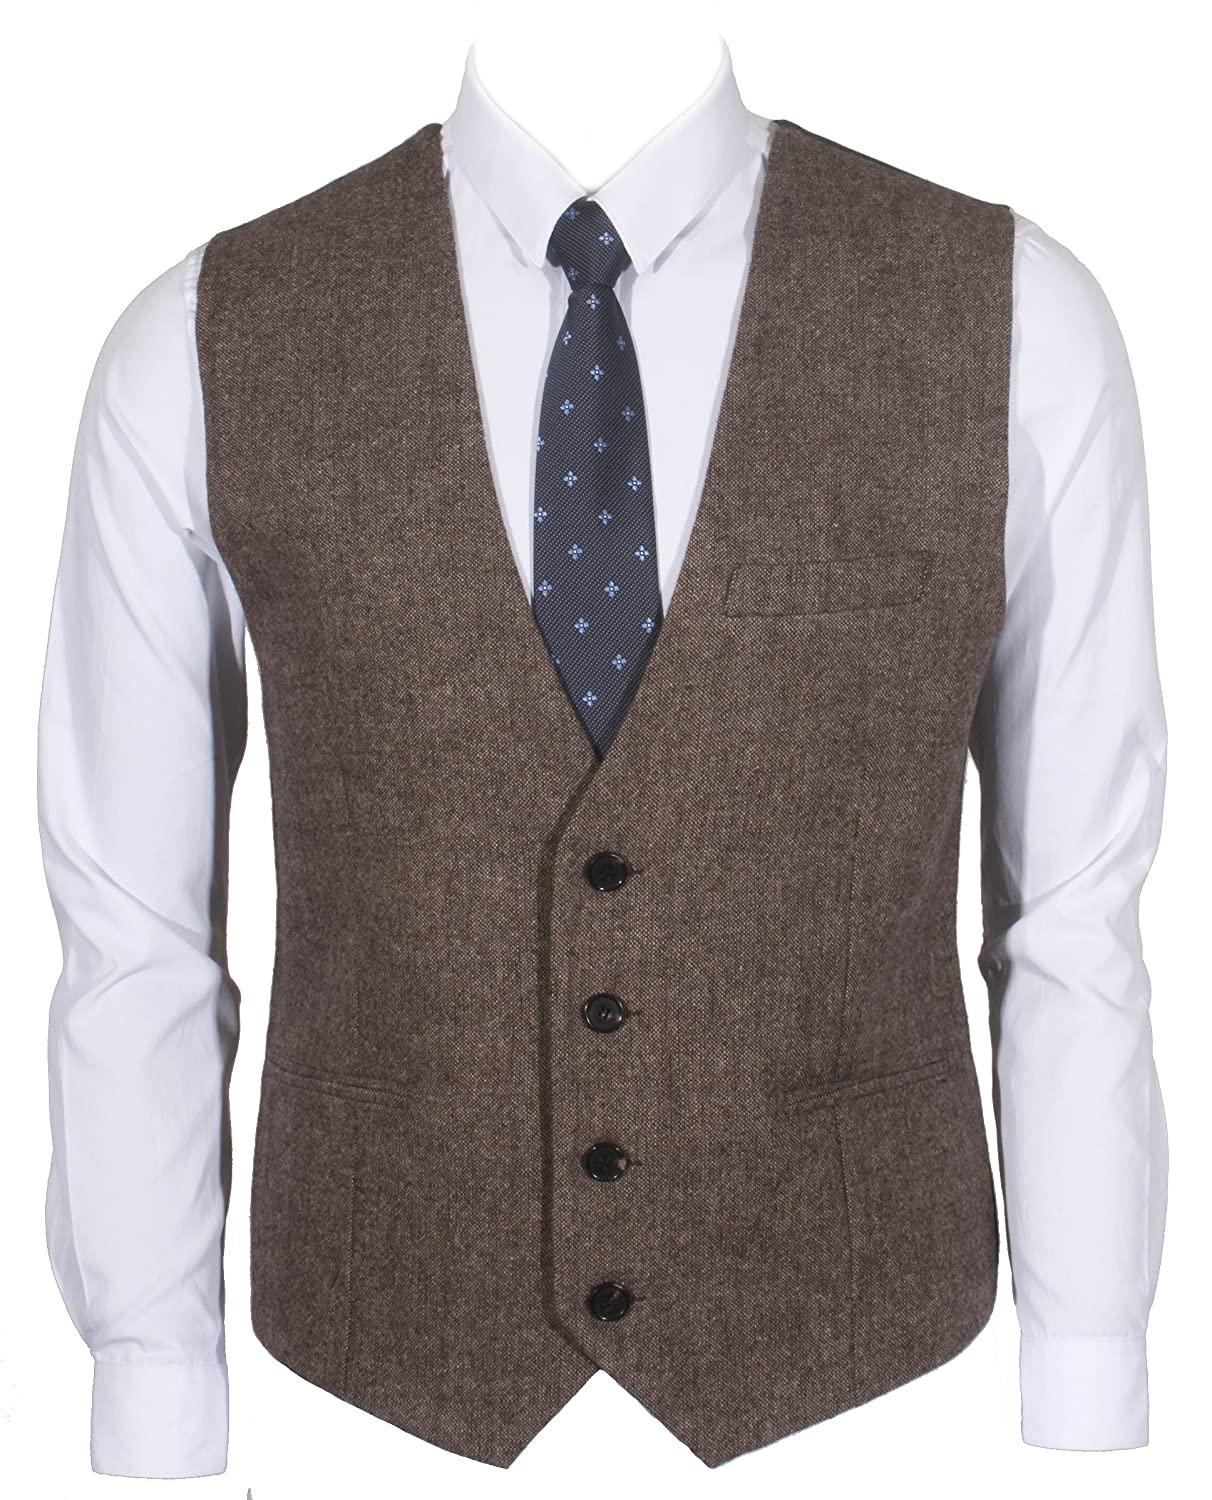 Ruth&Boaz 3Pockets 4Buttons Wool Herringbone Tweed Business Suit Vest